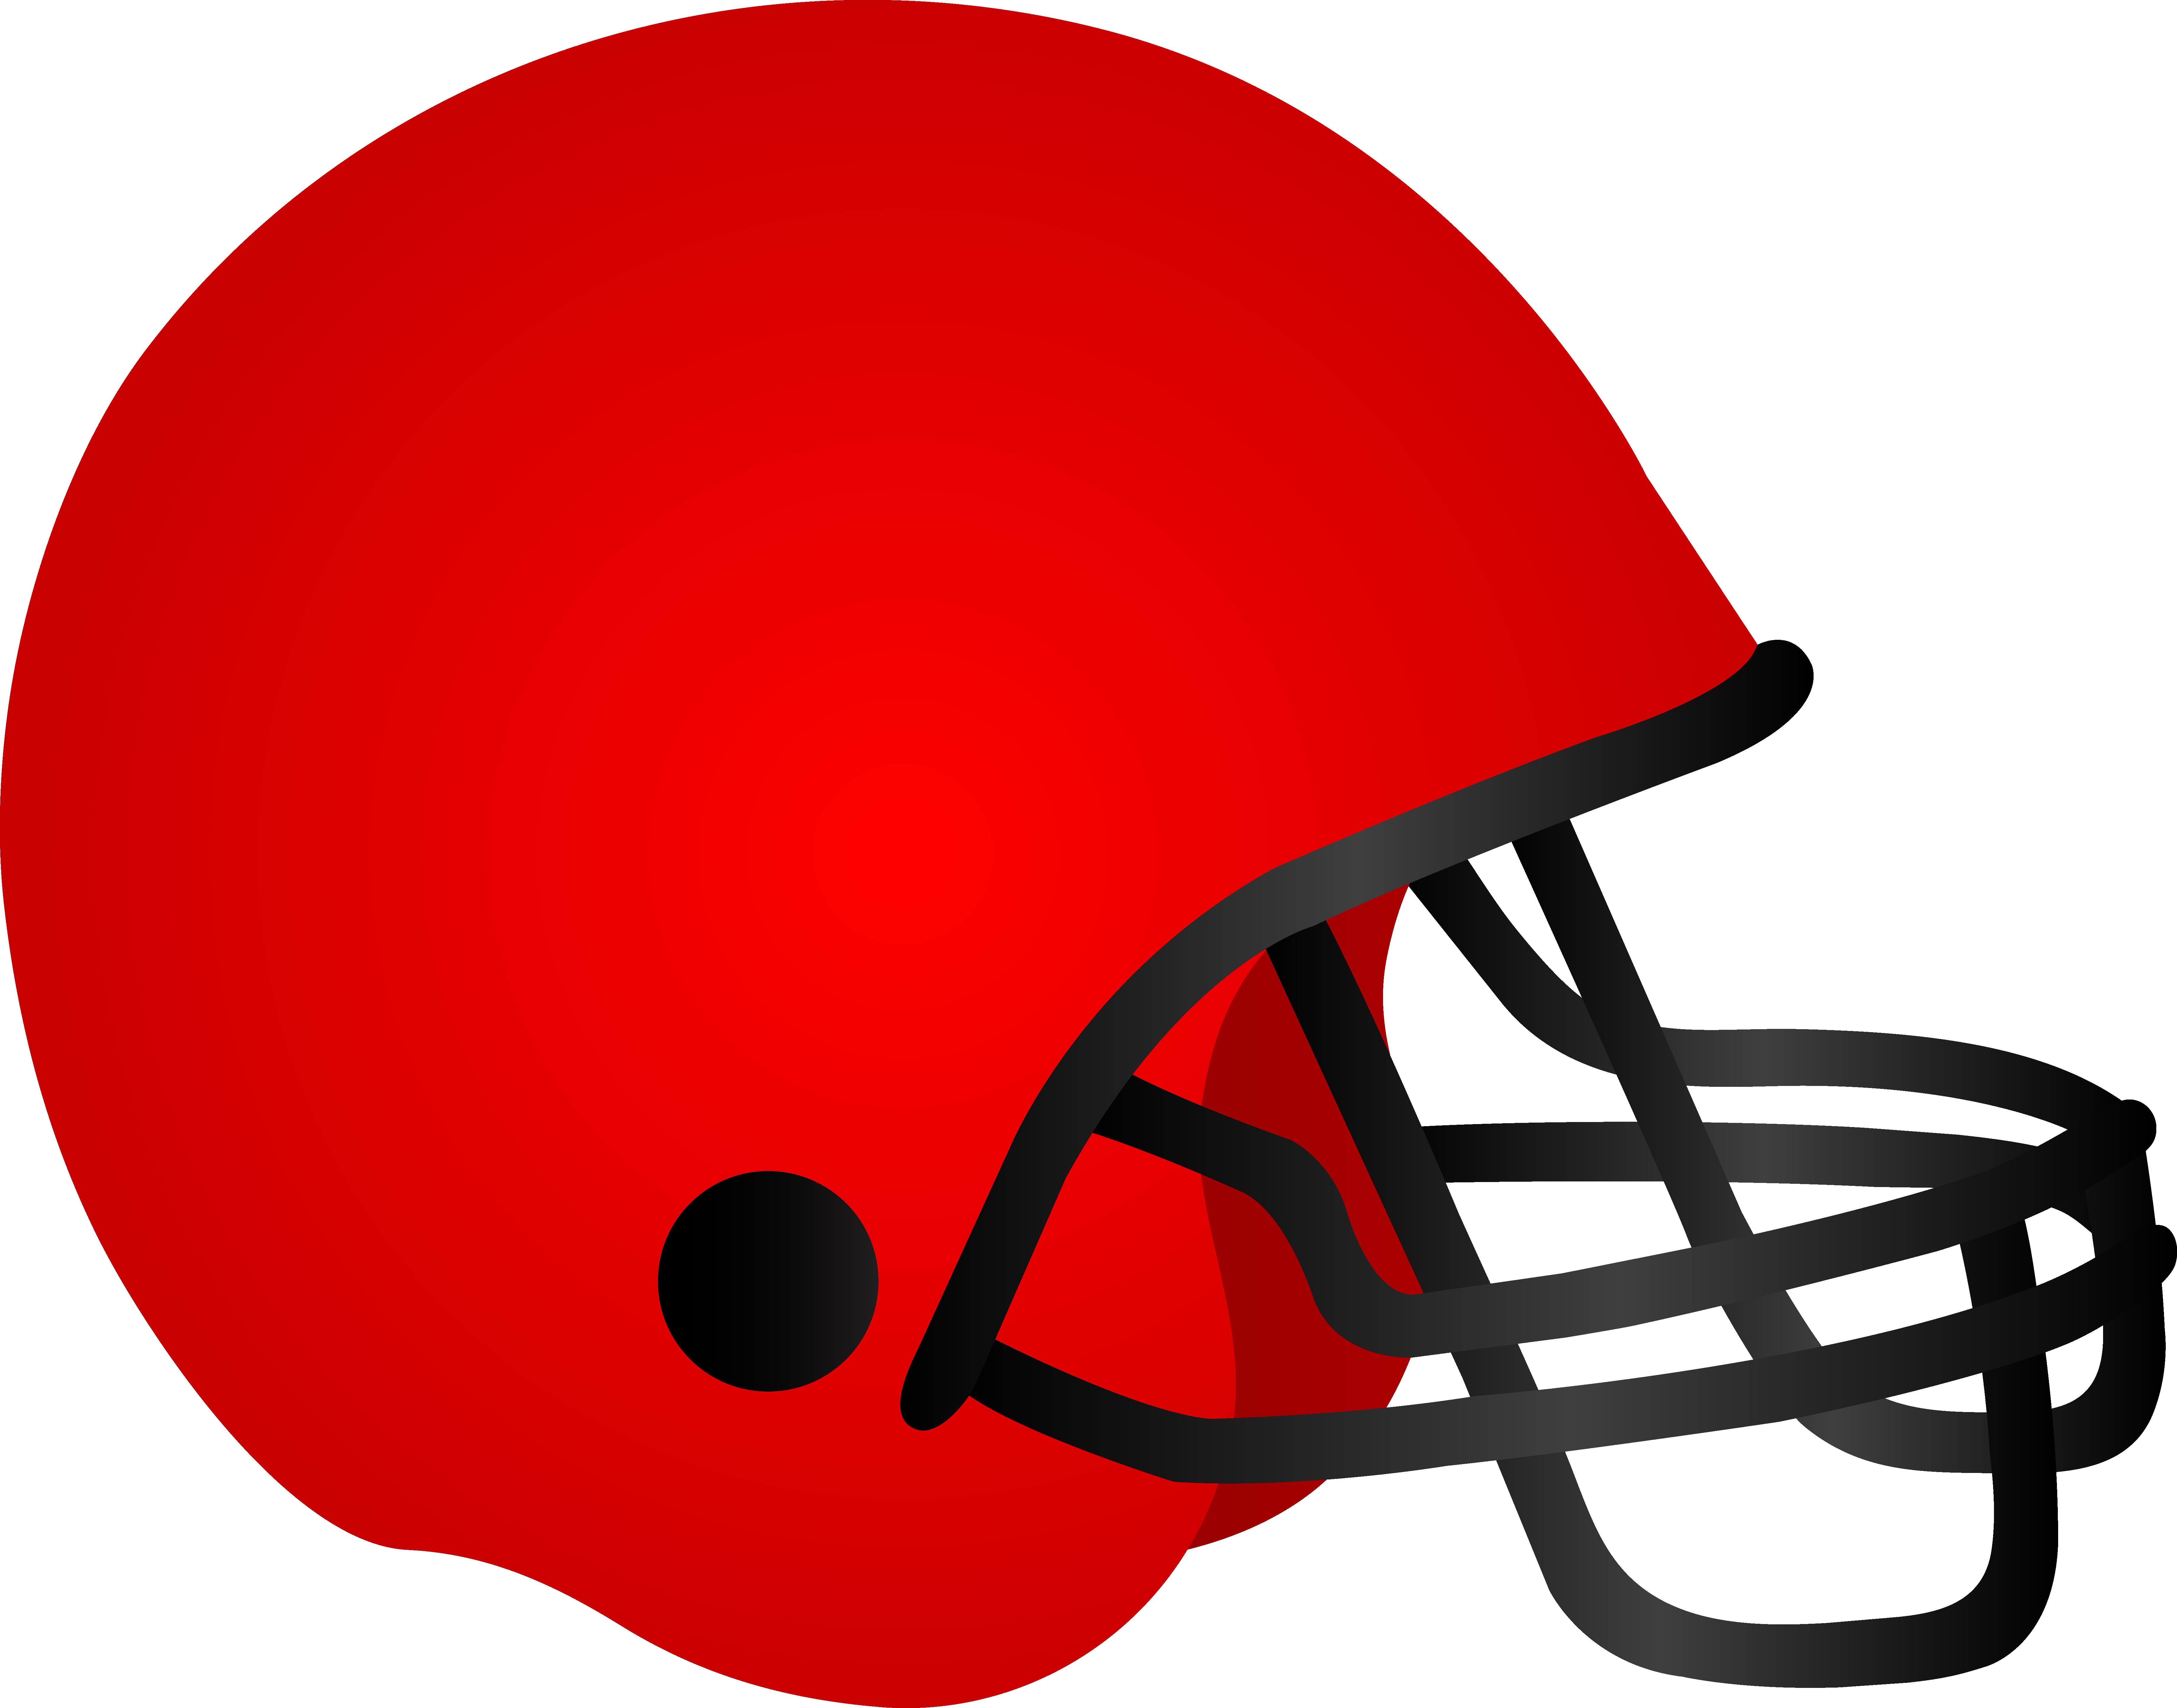 Download American Football Helm Clipart PNG Image for Free.